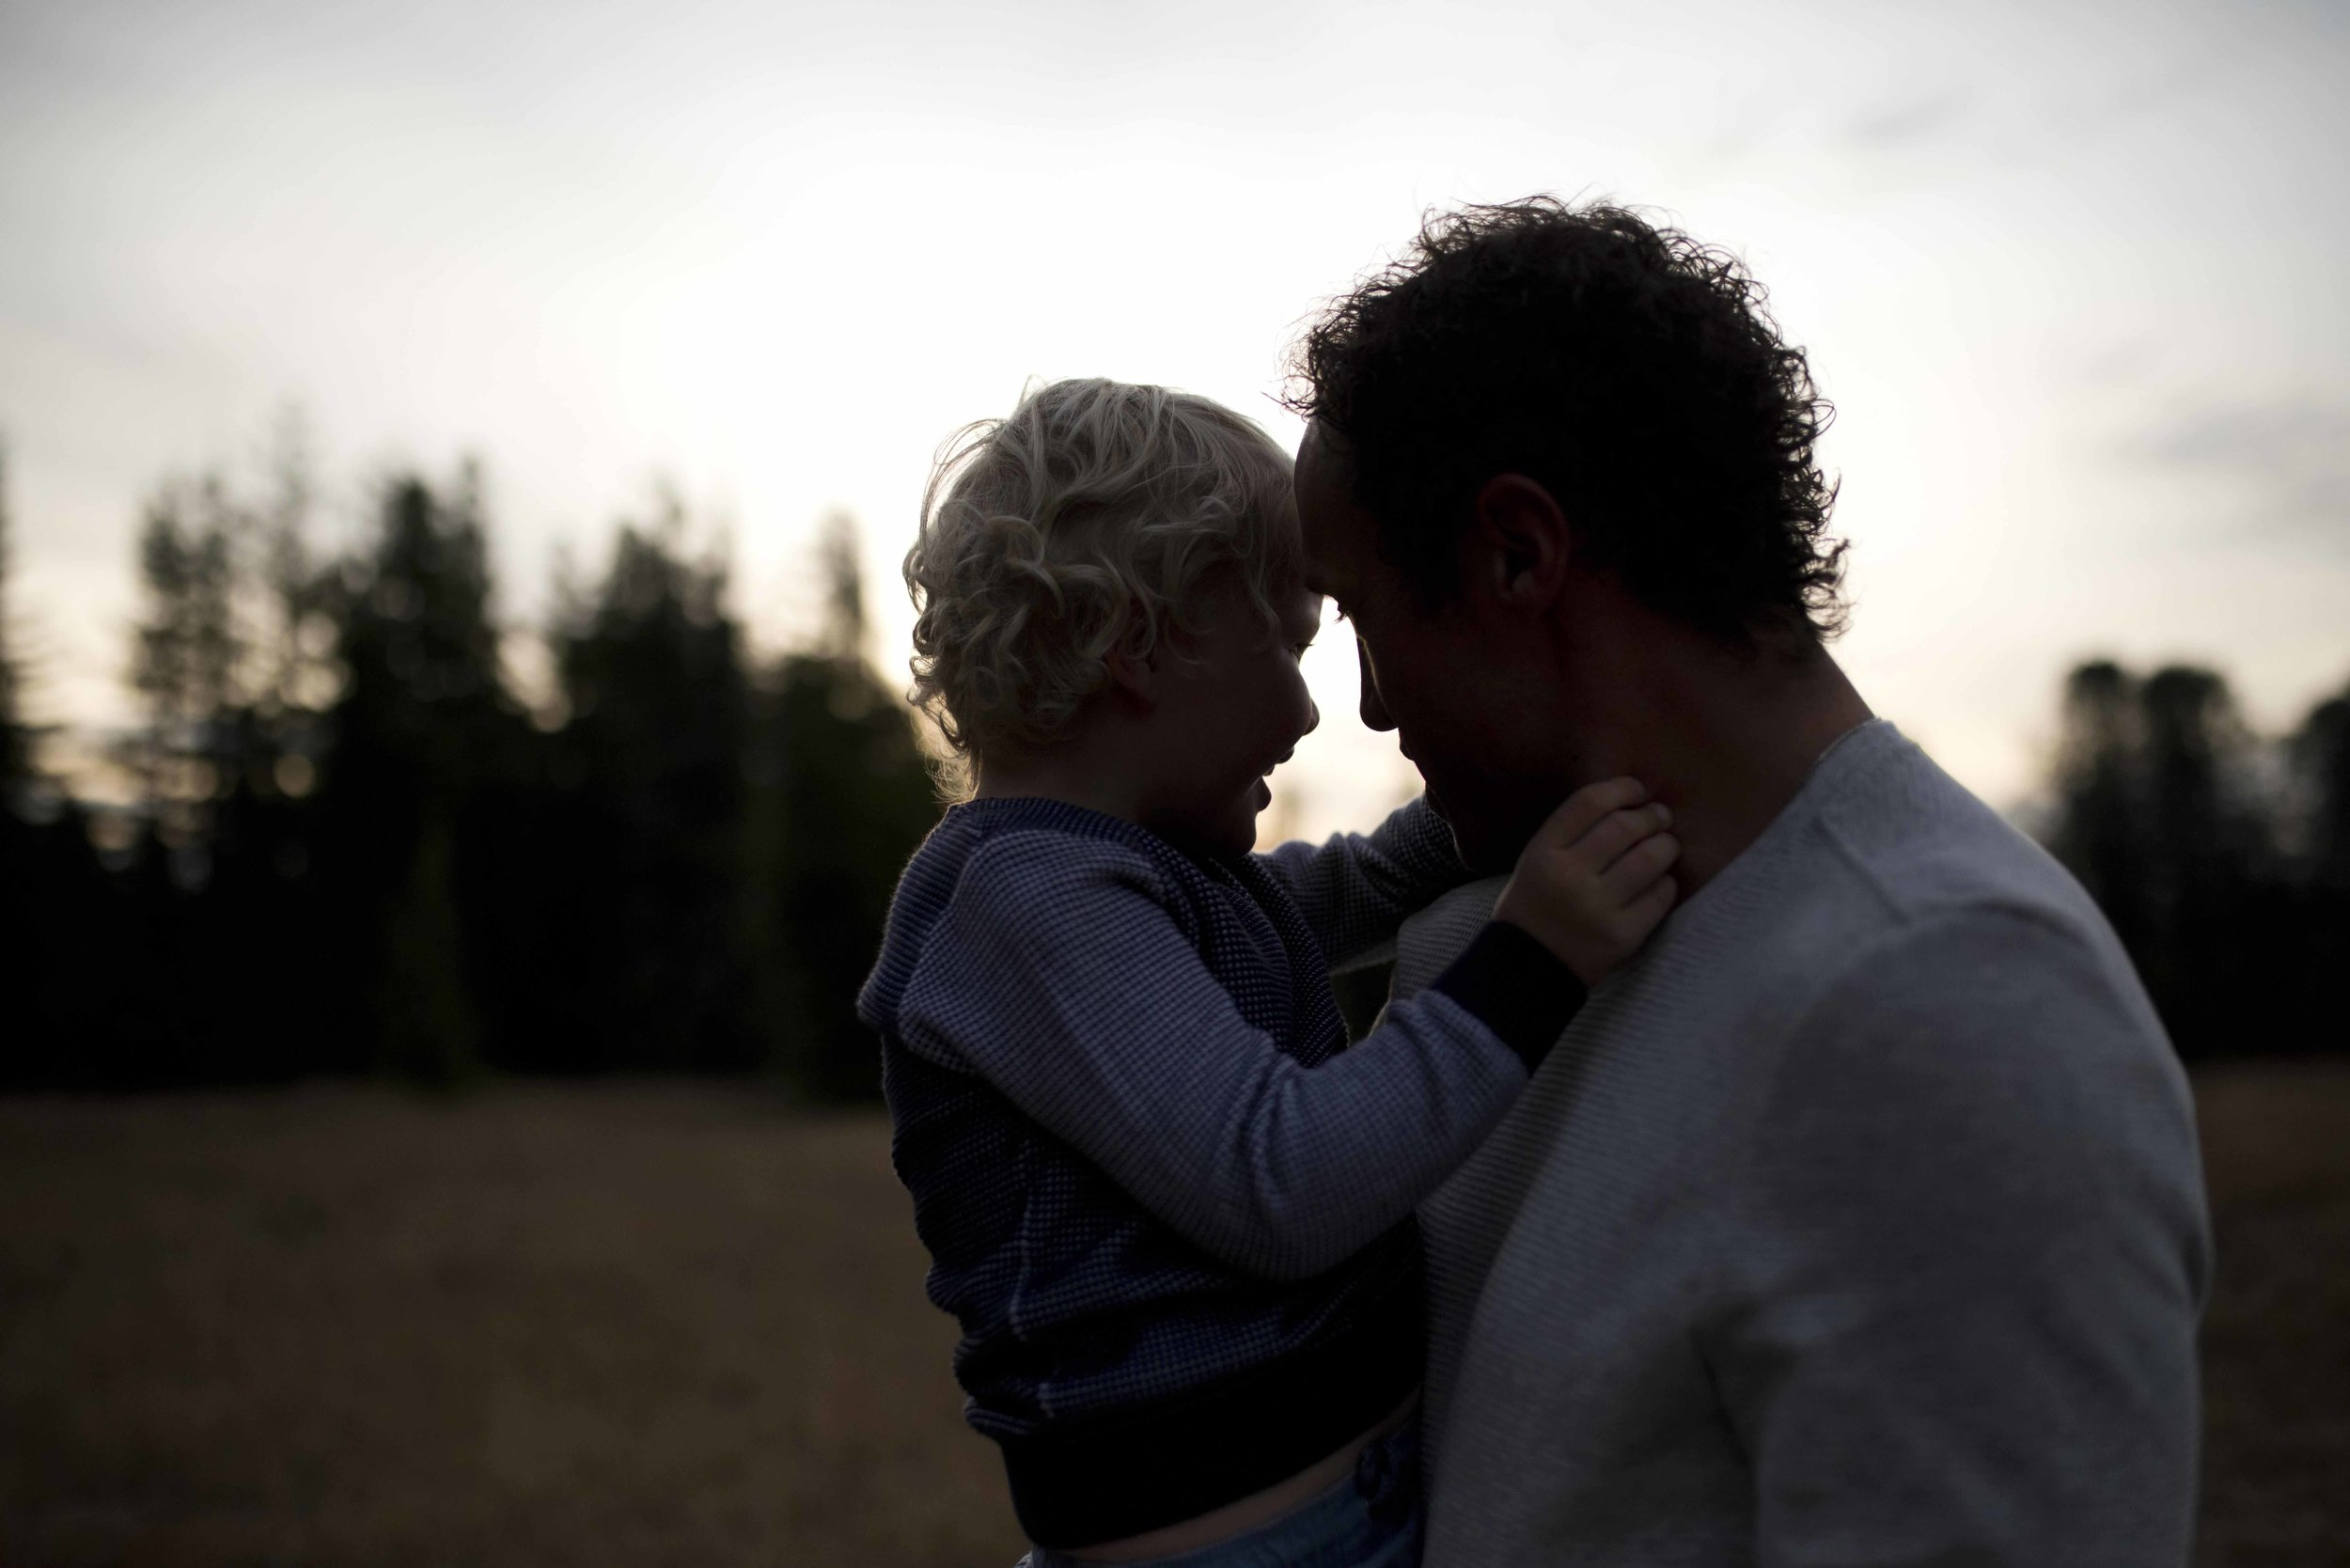 photogragher-for-families-in-canberra.jpg